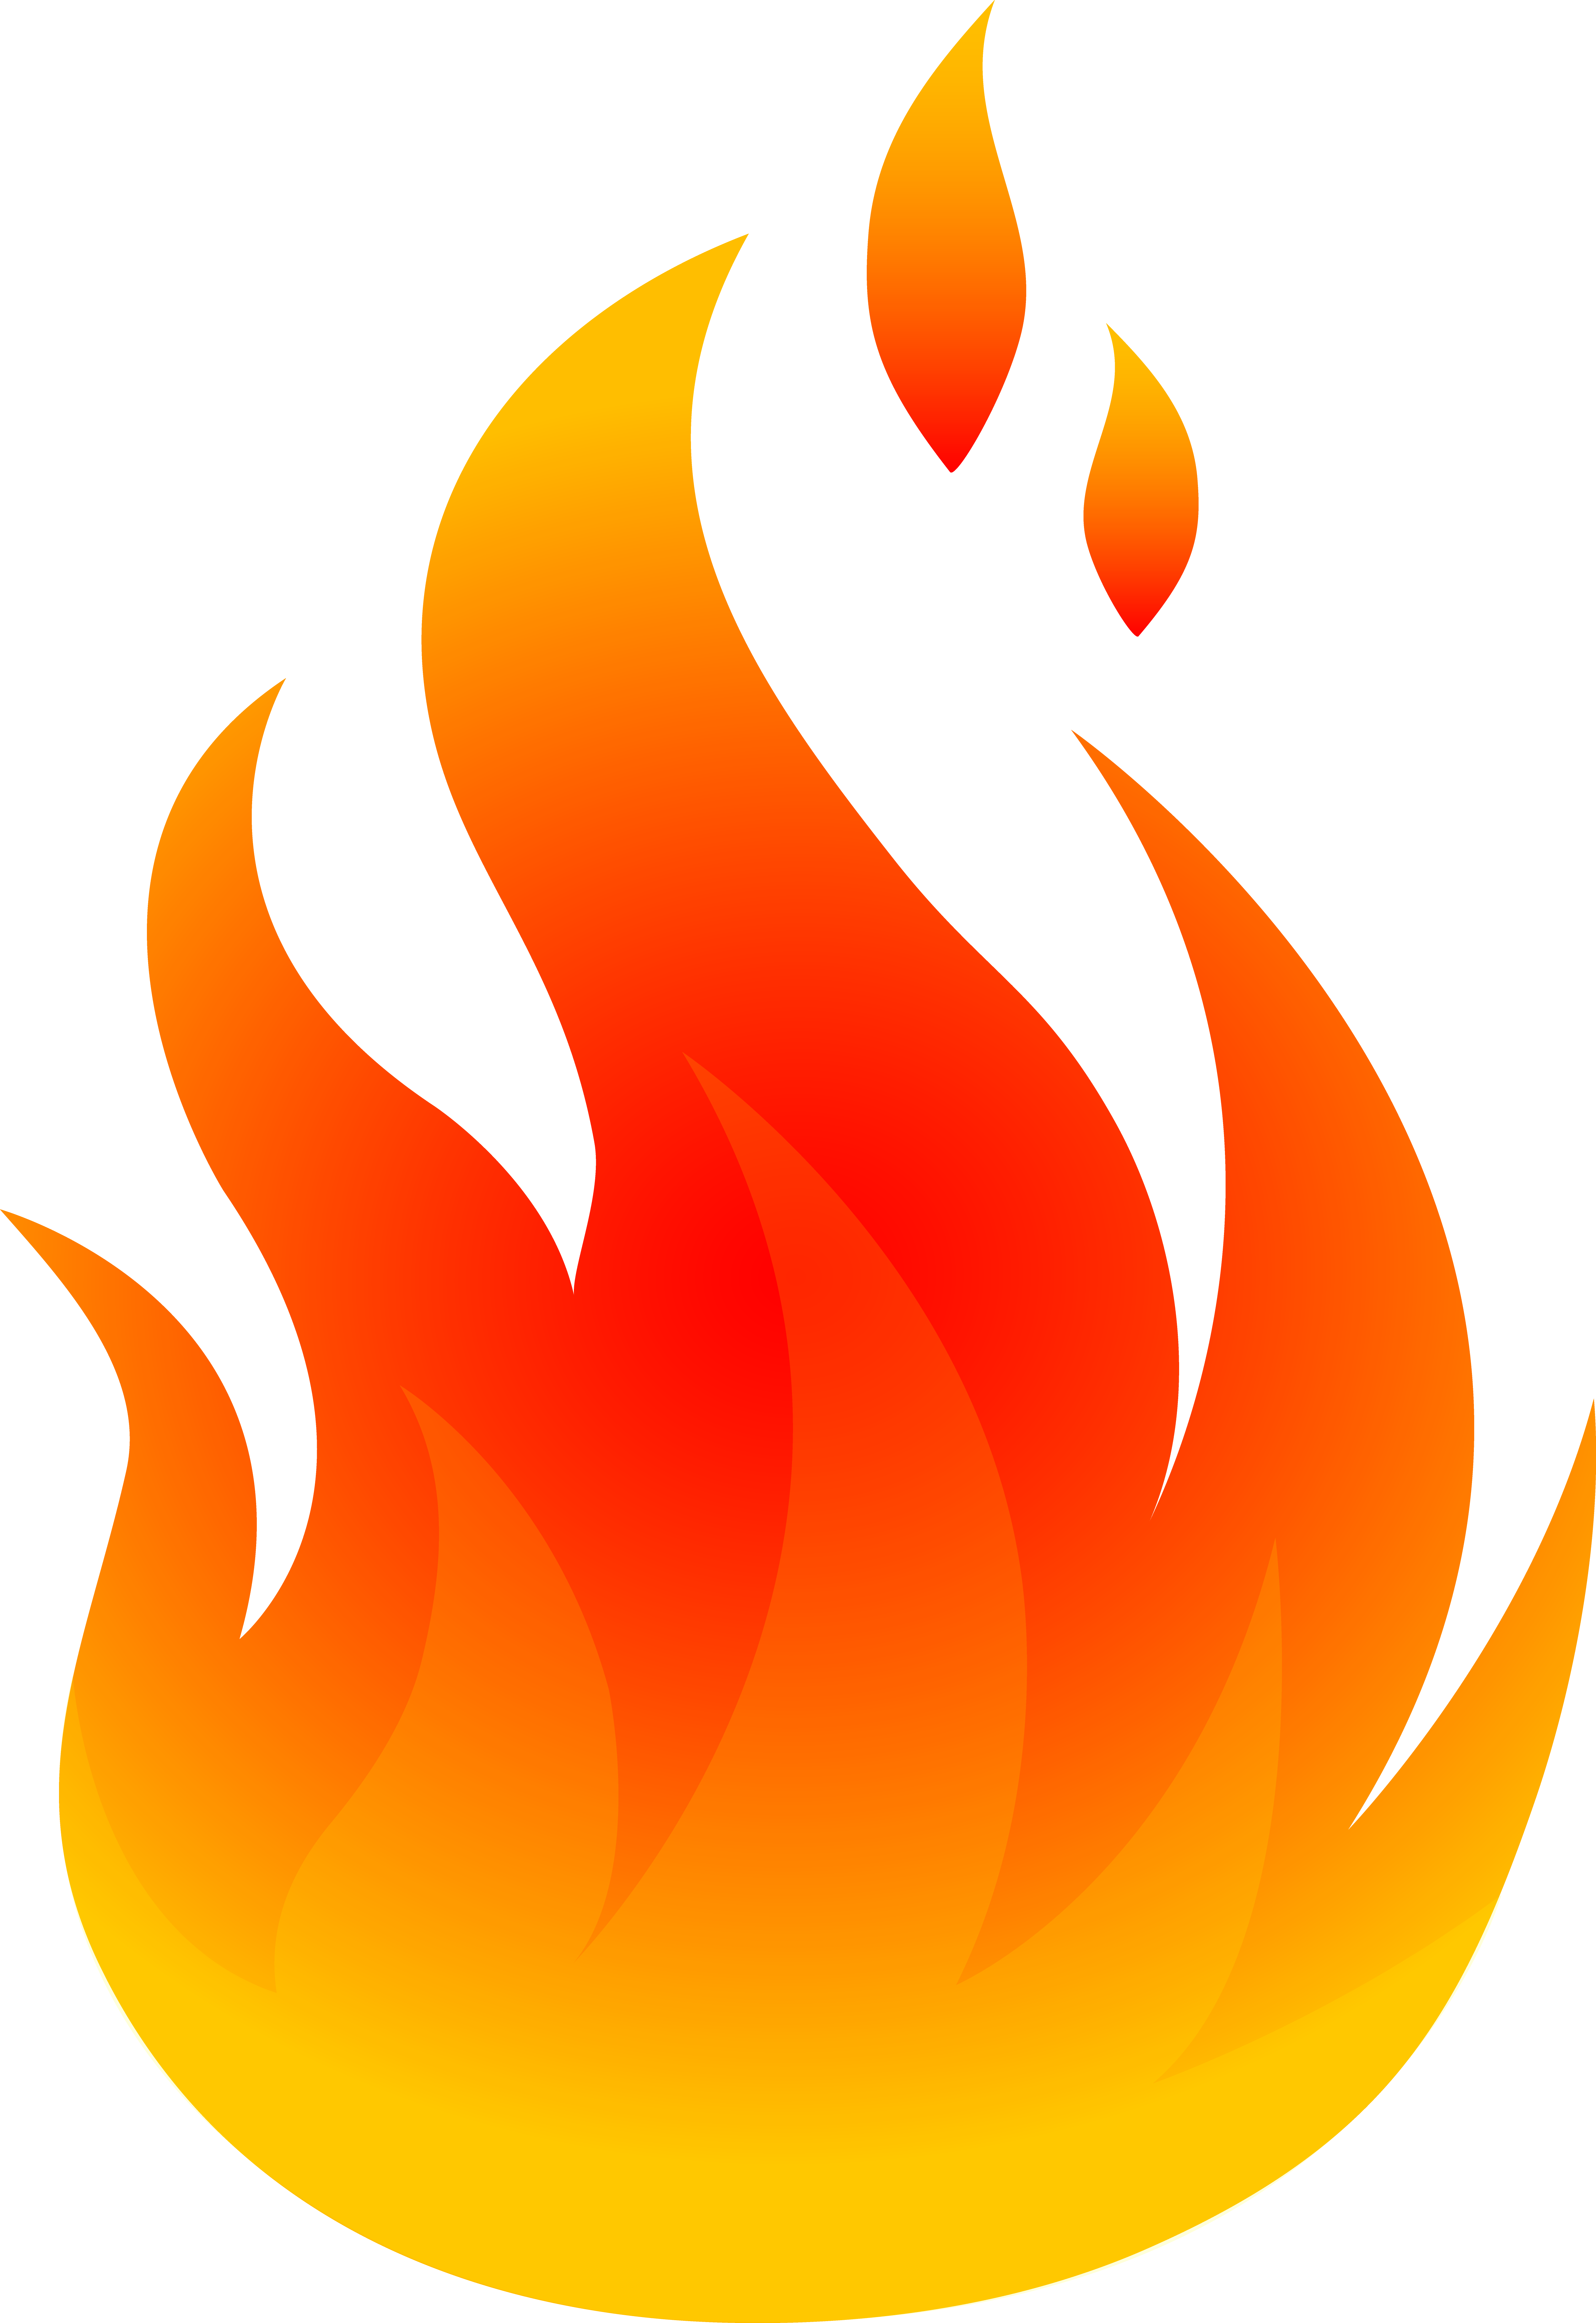 Fire Clip Art Border | Clipart library - Free Clipart Images